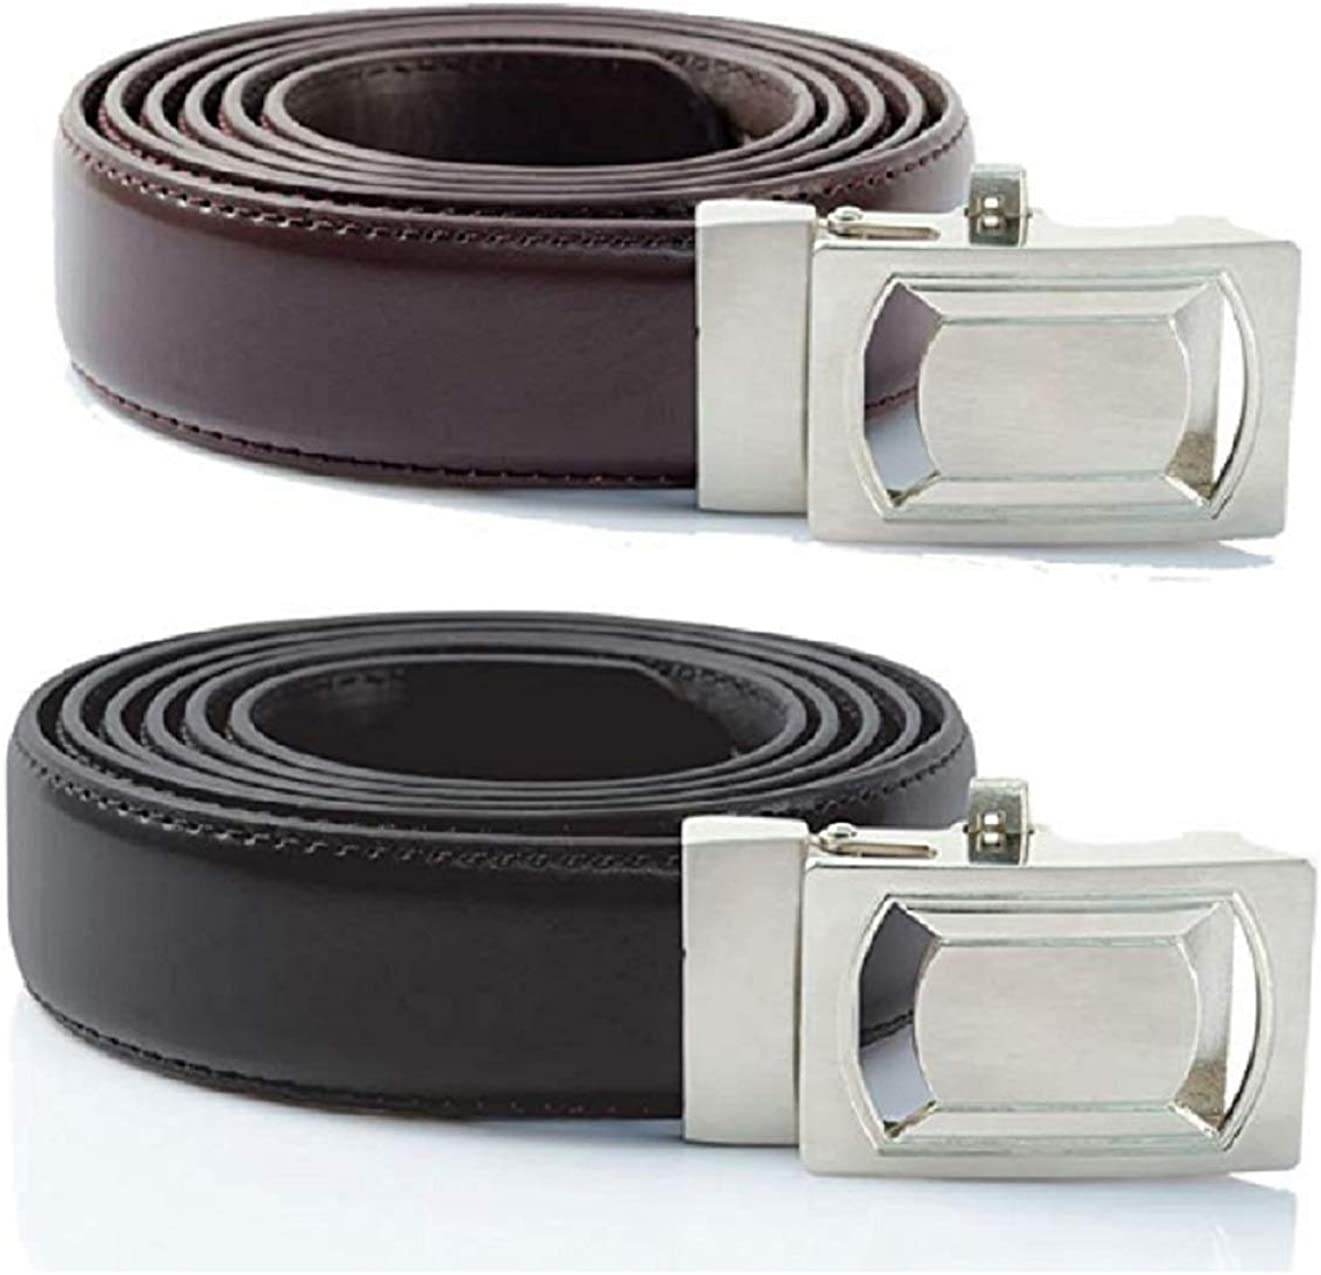 """Ideaworks Click 'N' Go Belts – Easy Fit Belts – Adjusts Every ¼"""" – Fits 28""""-56"""" Sizes – Quick Release Feature"""